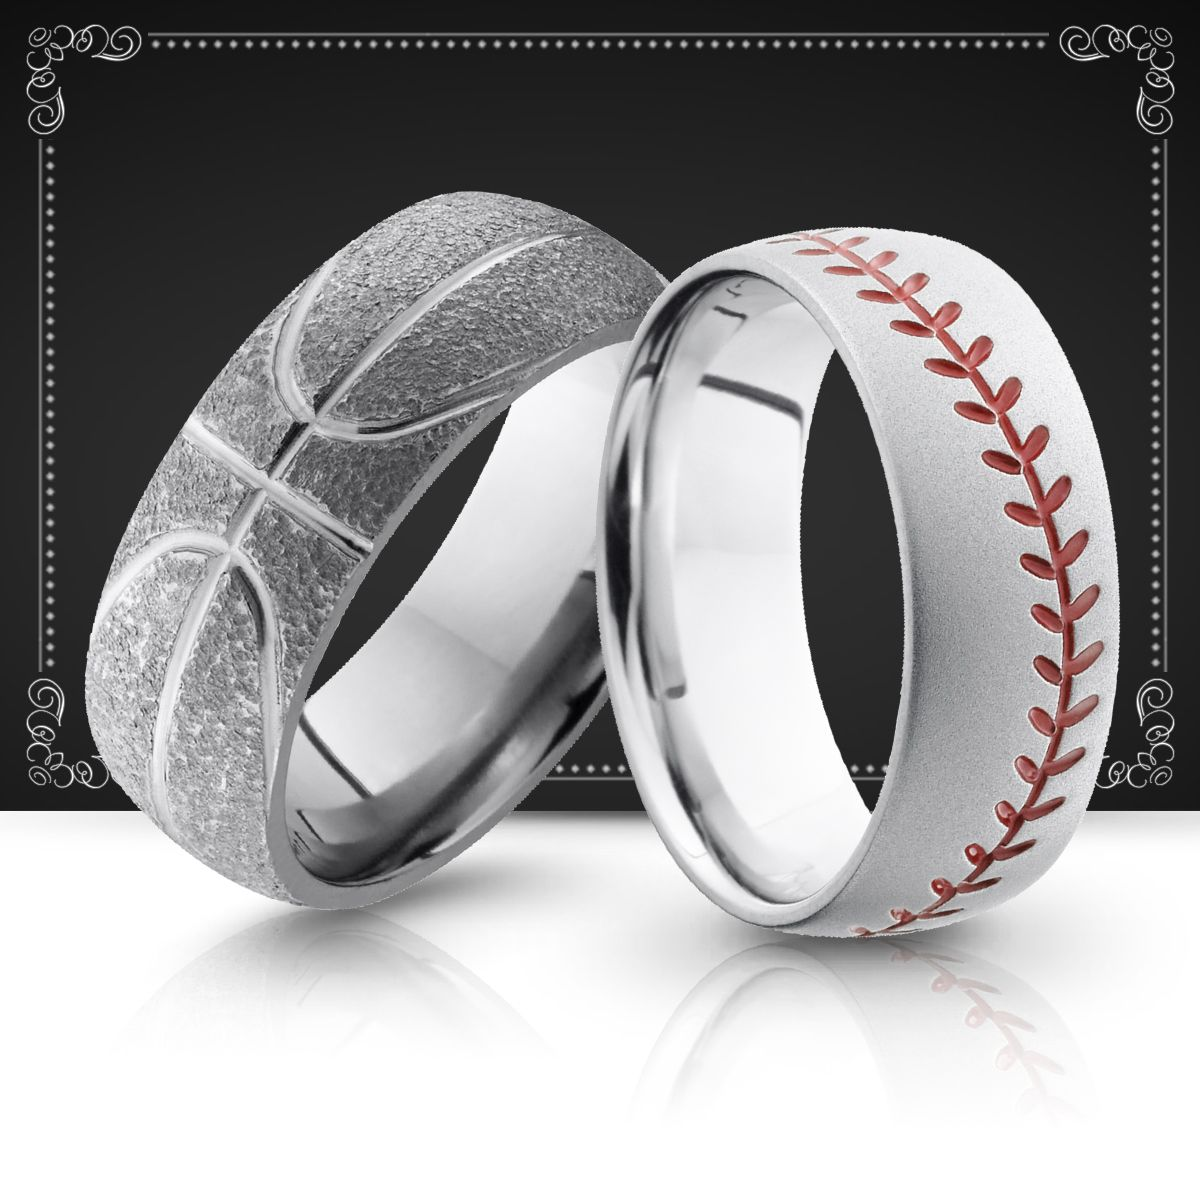 Men S Wedding Bands Rings Wedding Gifts For Groom Mens Wedding Rings Wedding Bands